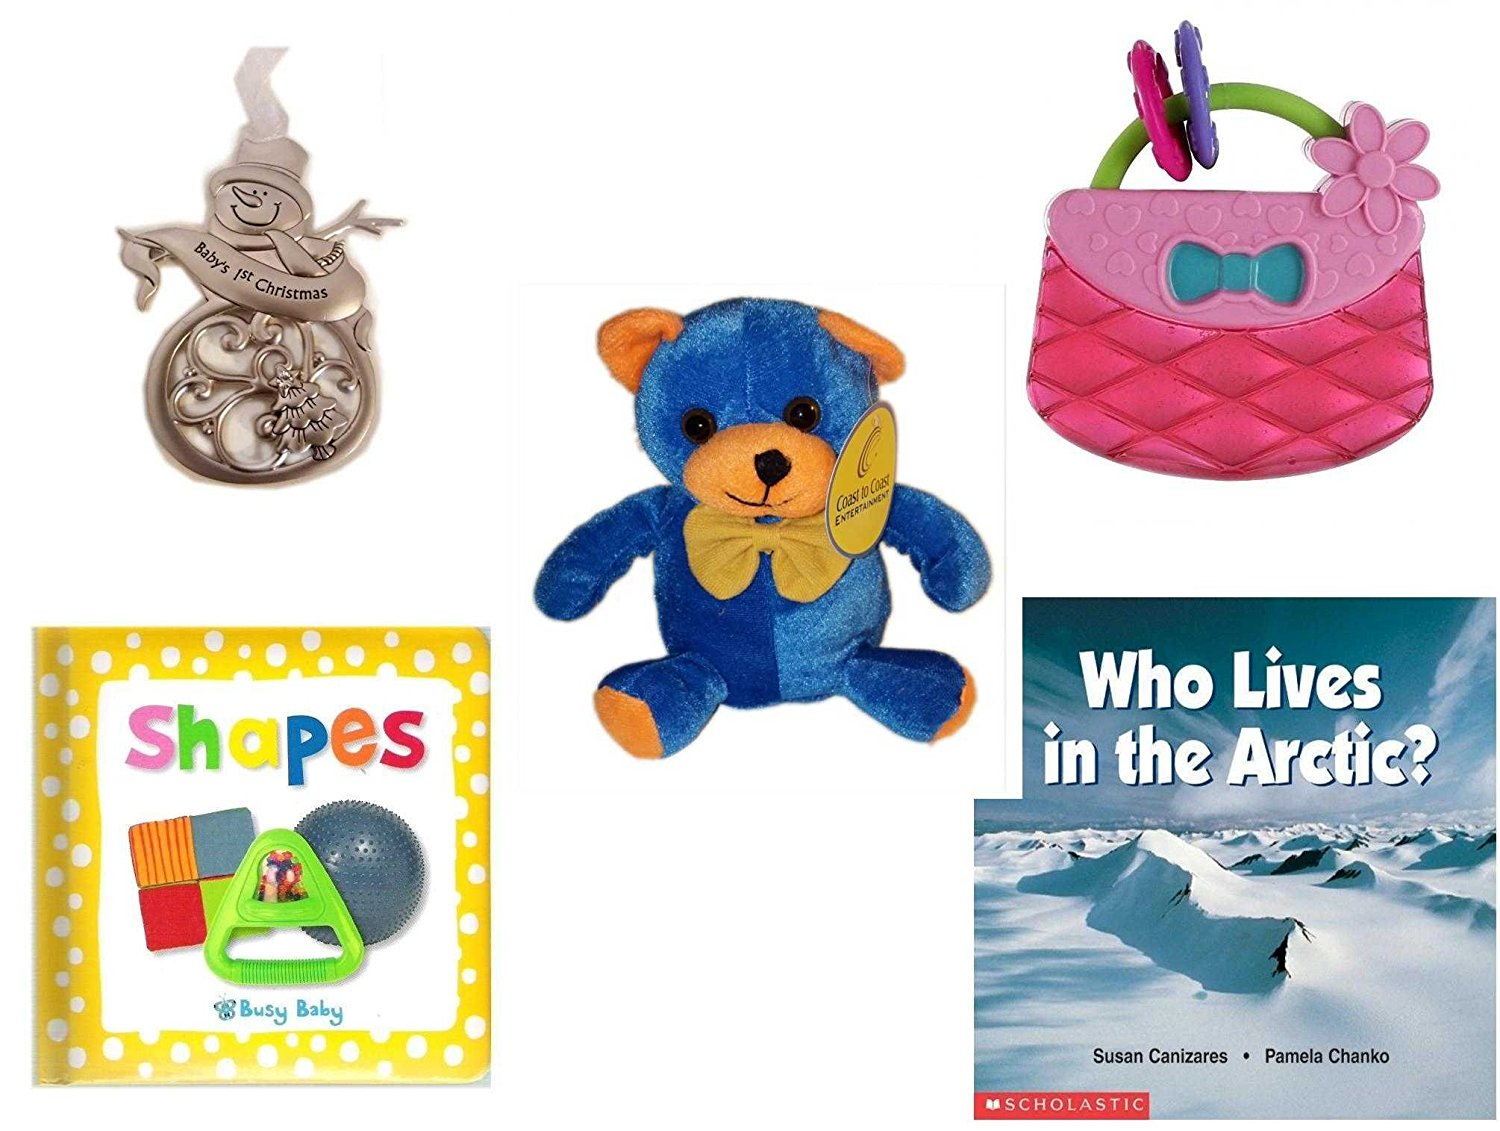 "Children's Gift Bundle - Ages 0-2 [5 Piece] - Ganz Baby's First Christmas Pewter Snowman Ornament - Bright Starts Pretty in Pink Carry Teethe Purse - Blue & Orange Bear 7"" - Shapes: A Busy Baby Boar"